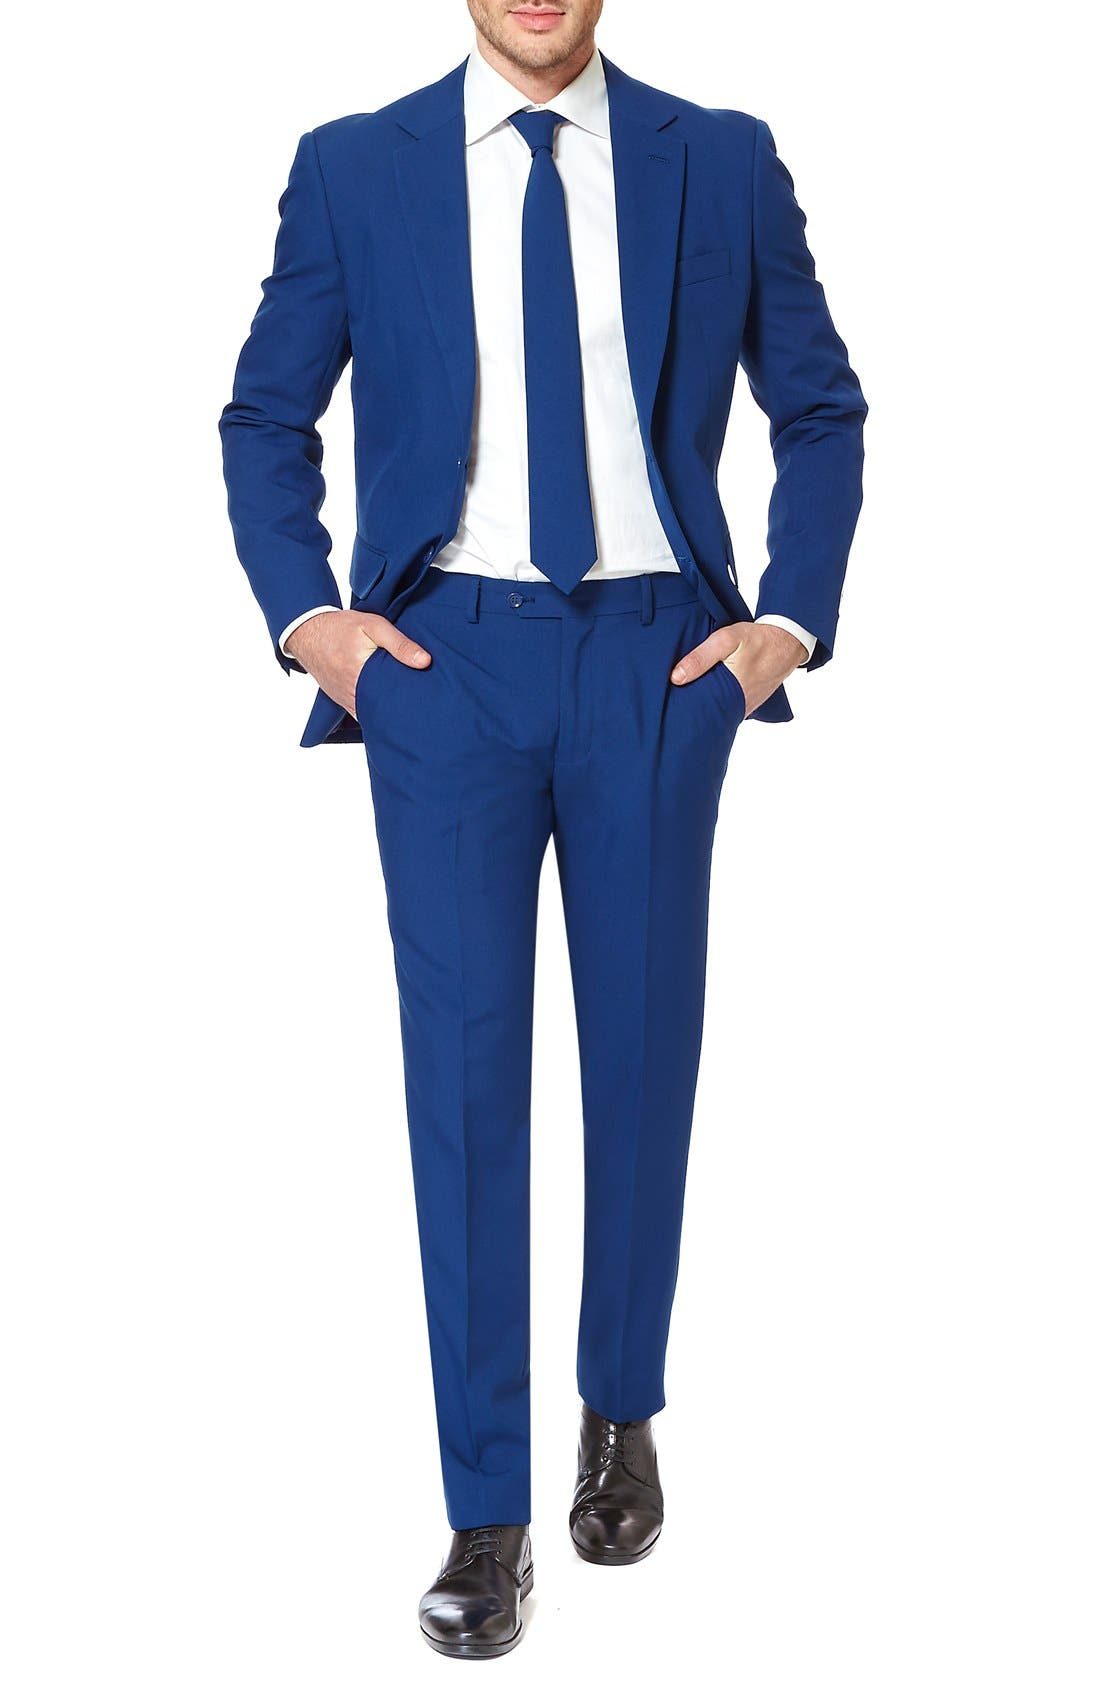 Main Image - OppoSuits 'Navy Royale' Trim Fit Two-Piece Suit with Tie